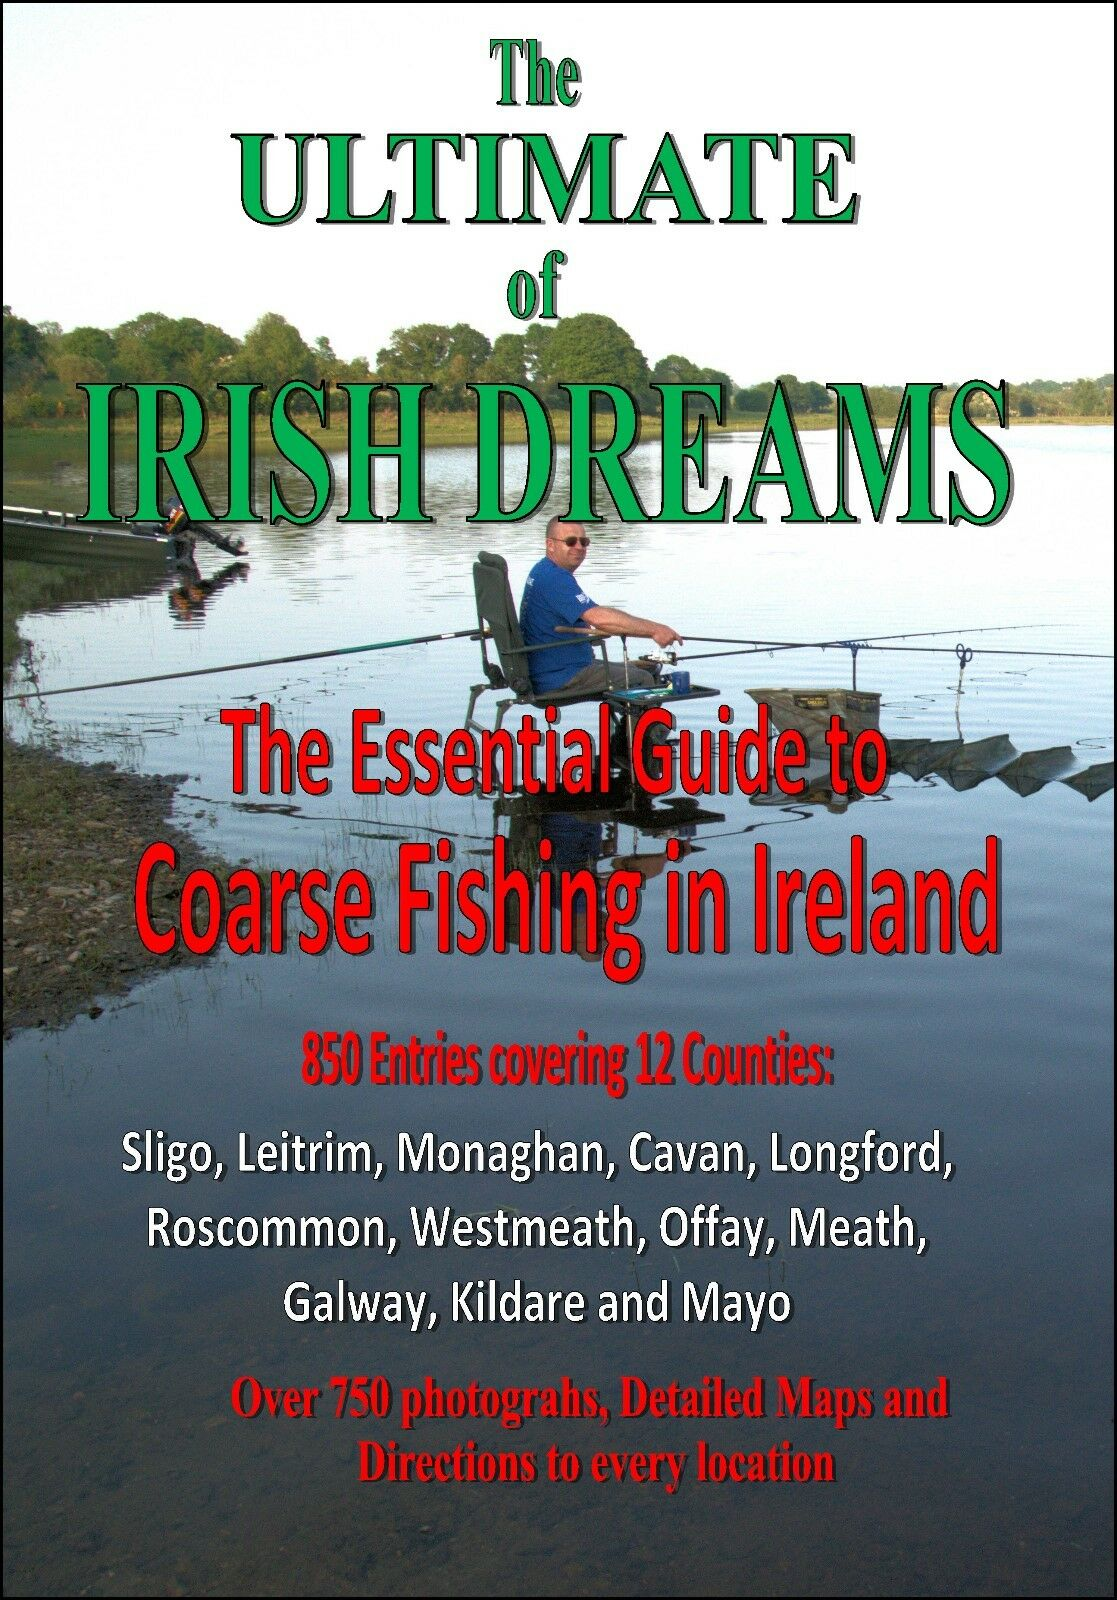 'The Ultimate of Irish Dreams' - The must-have Guide to Fishing in Ireland